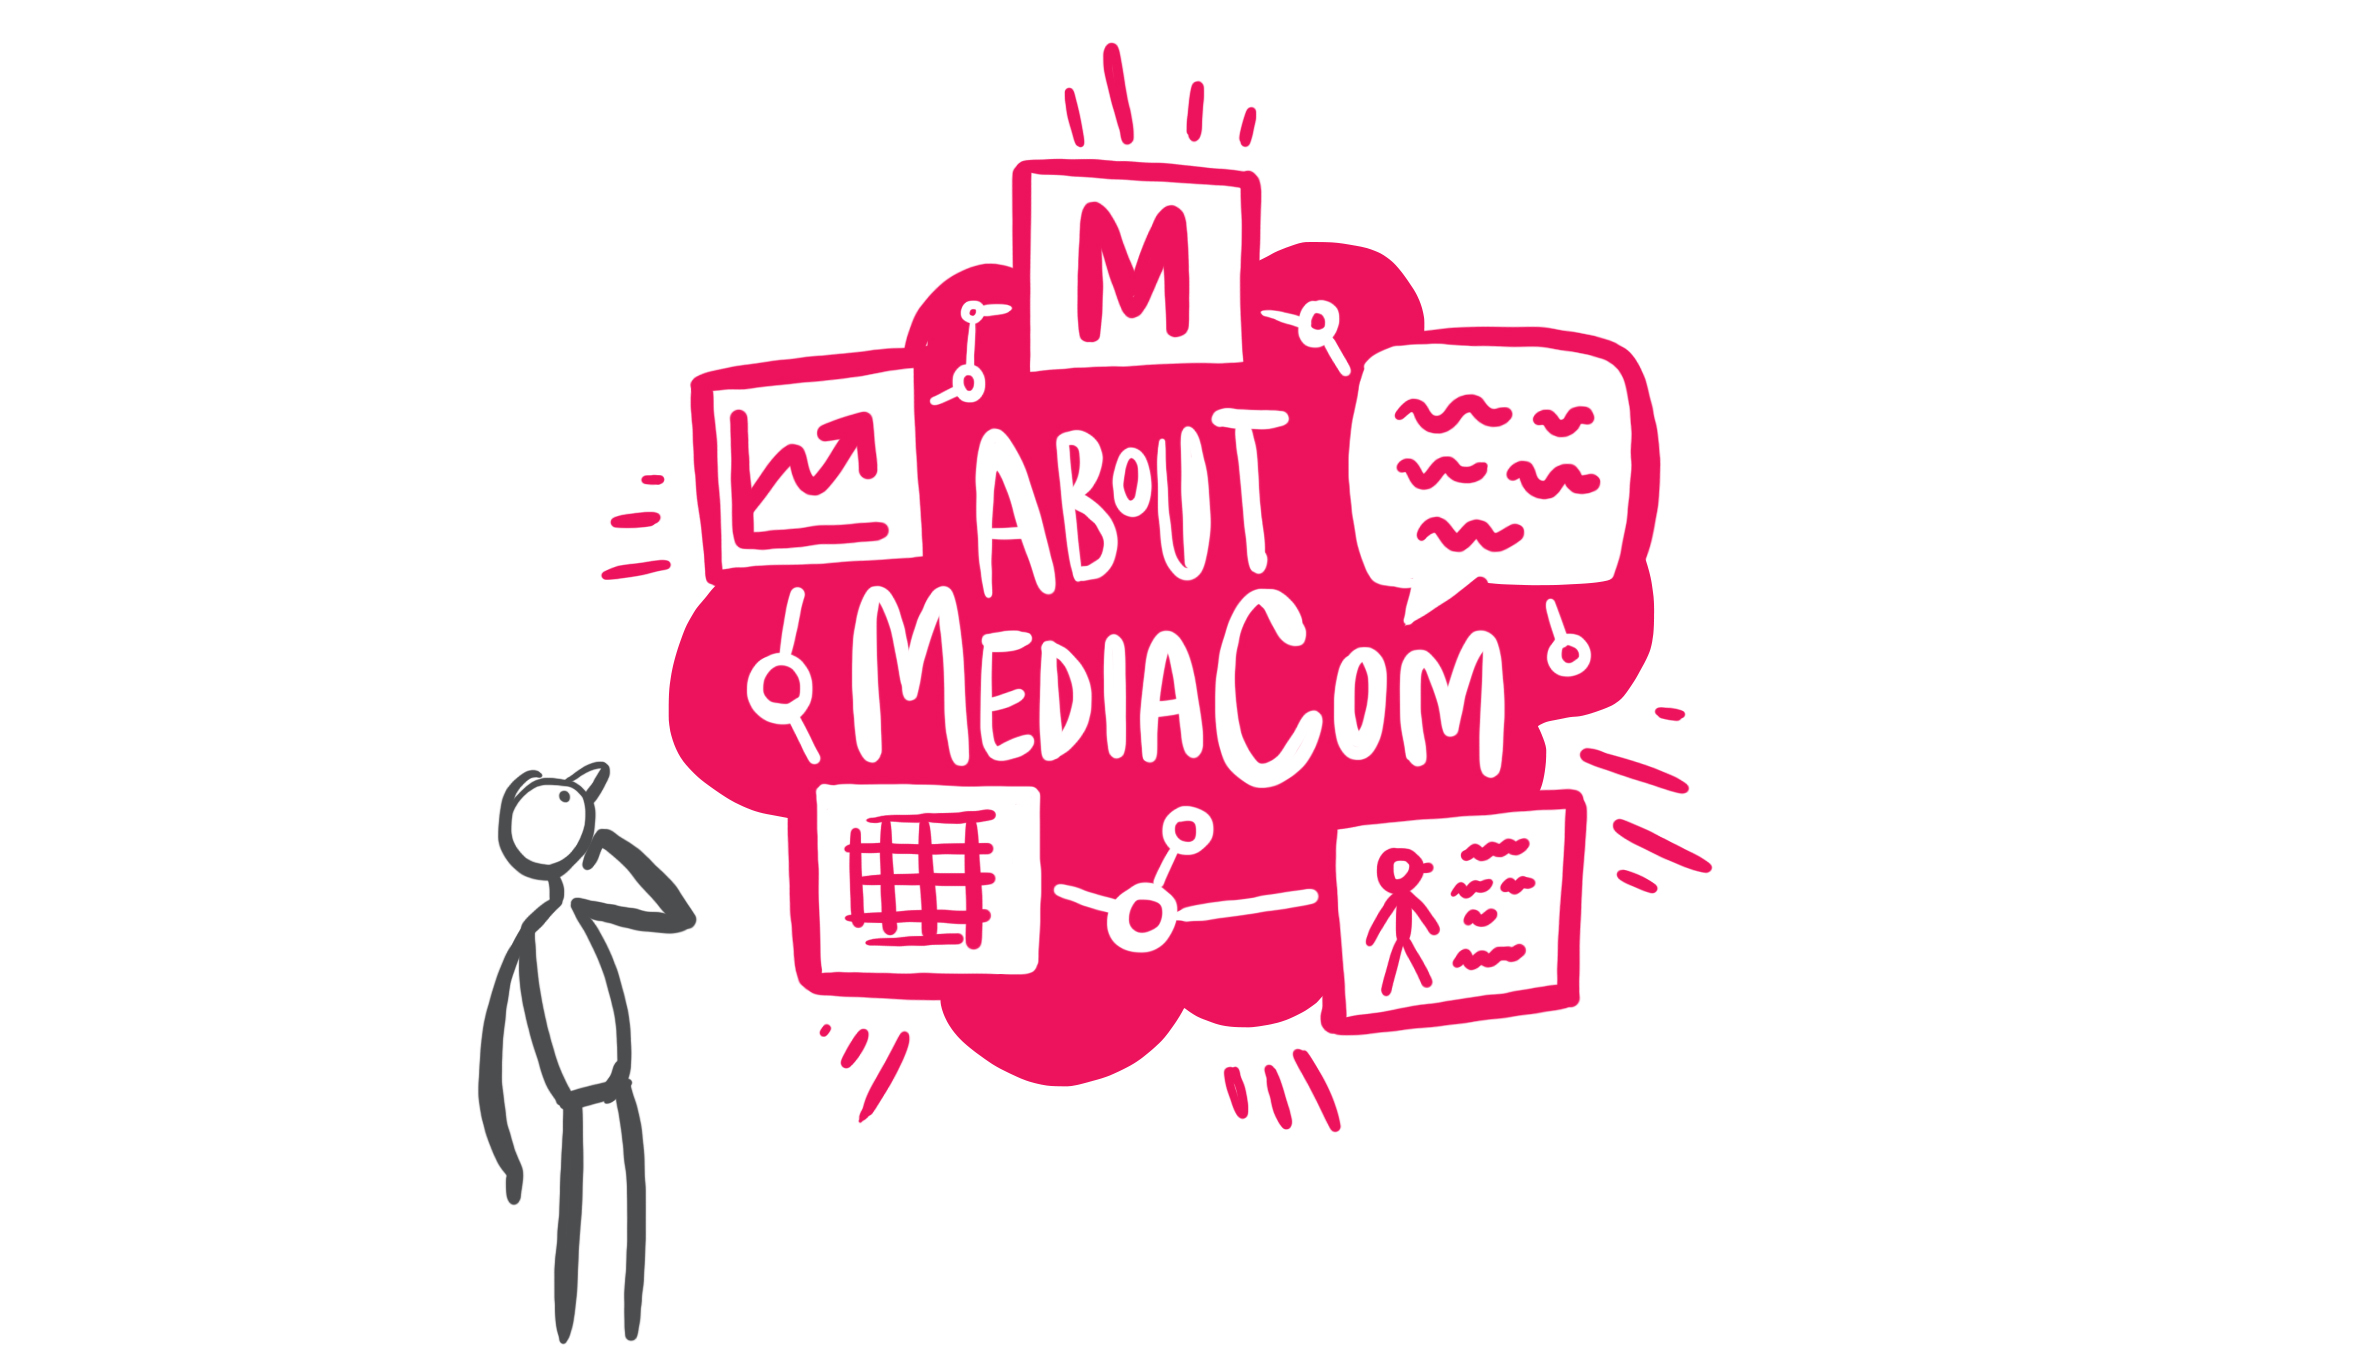 about-mediacom